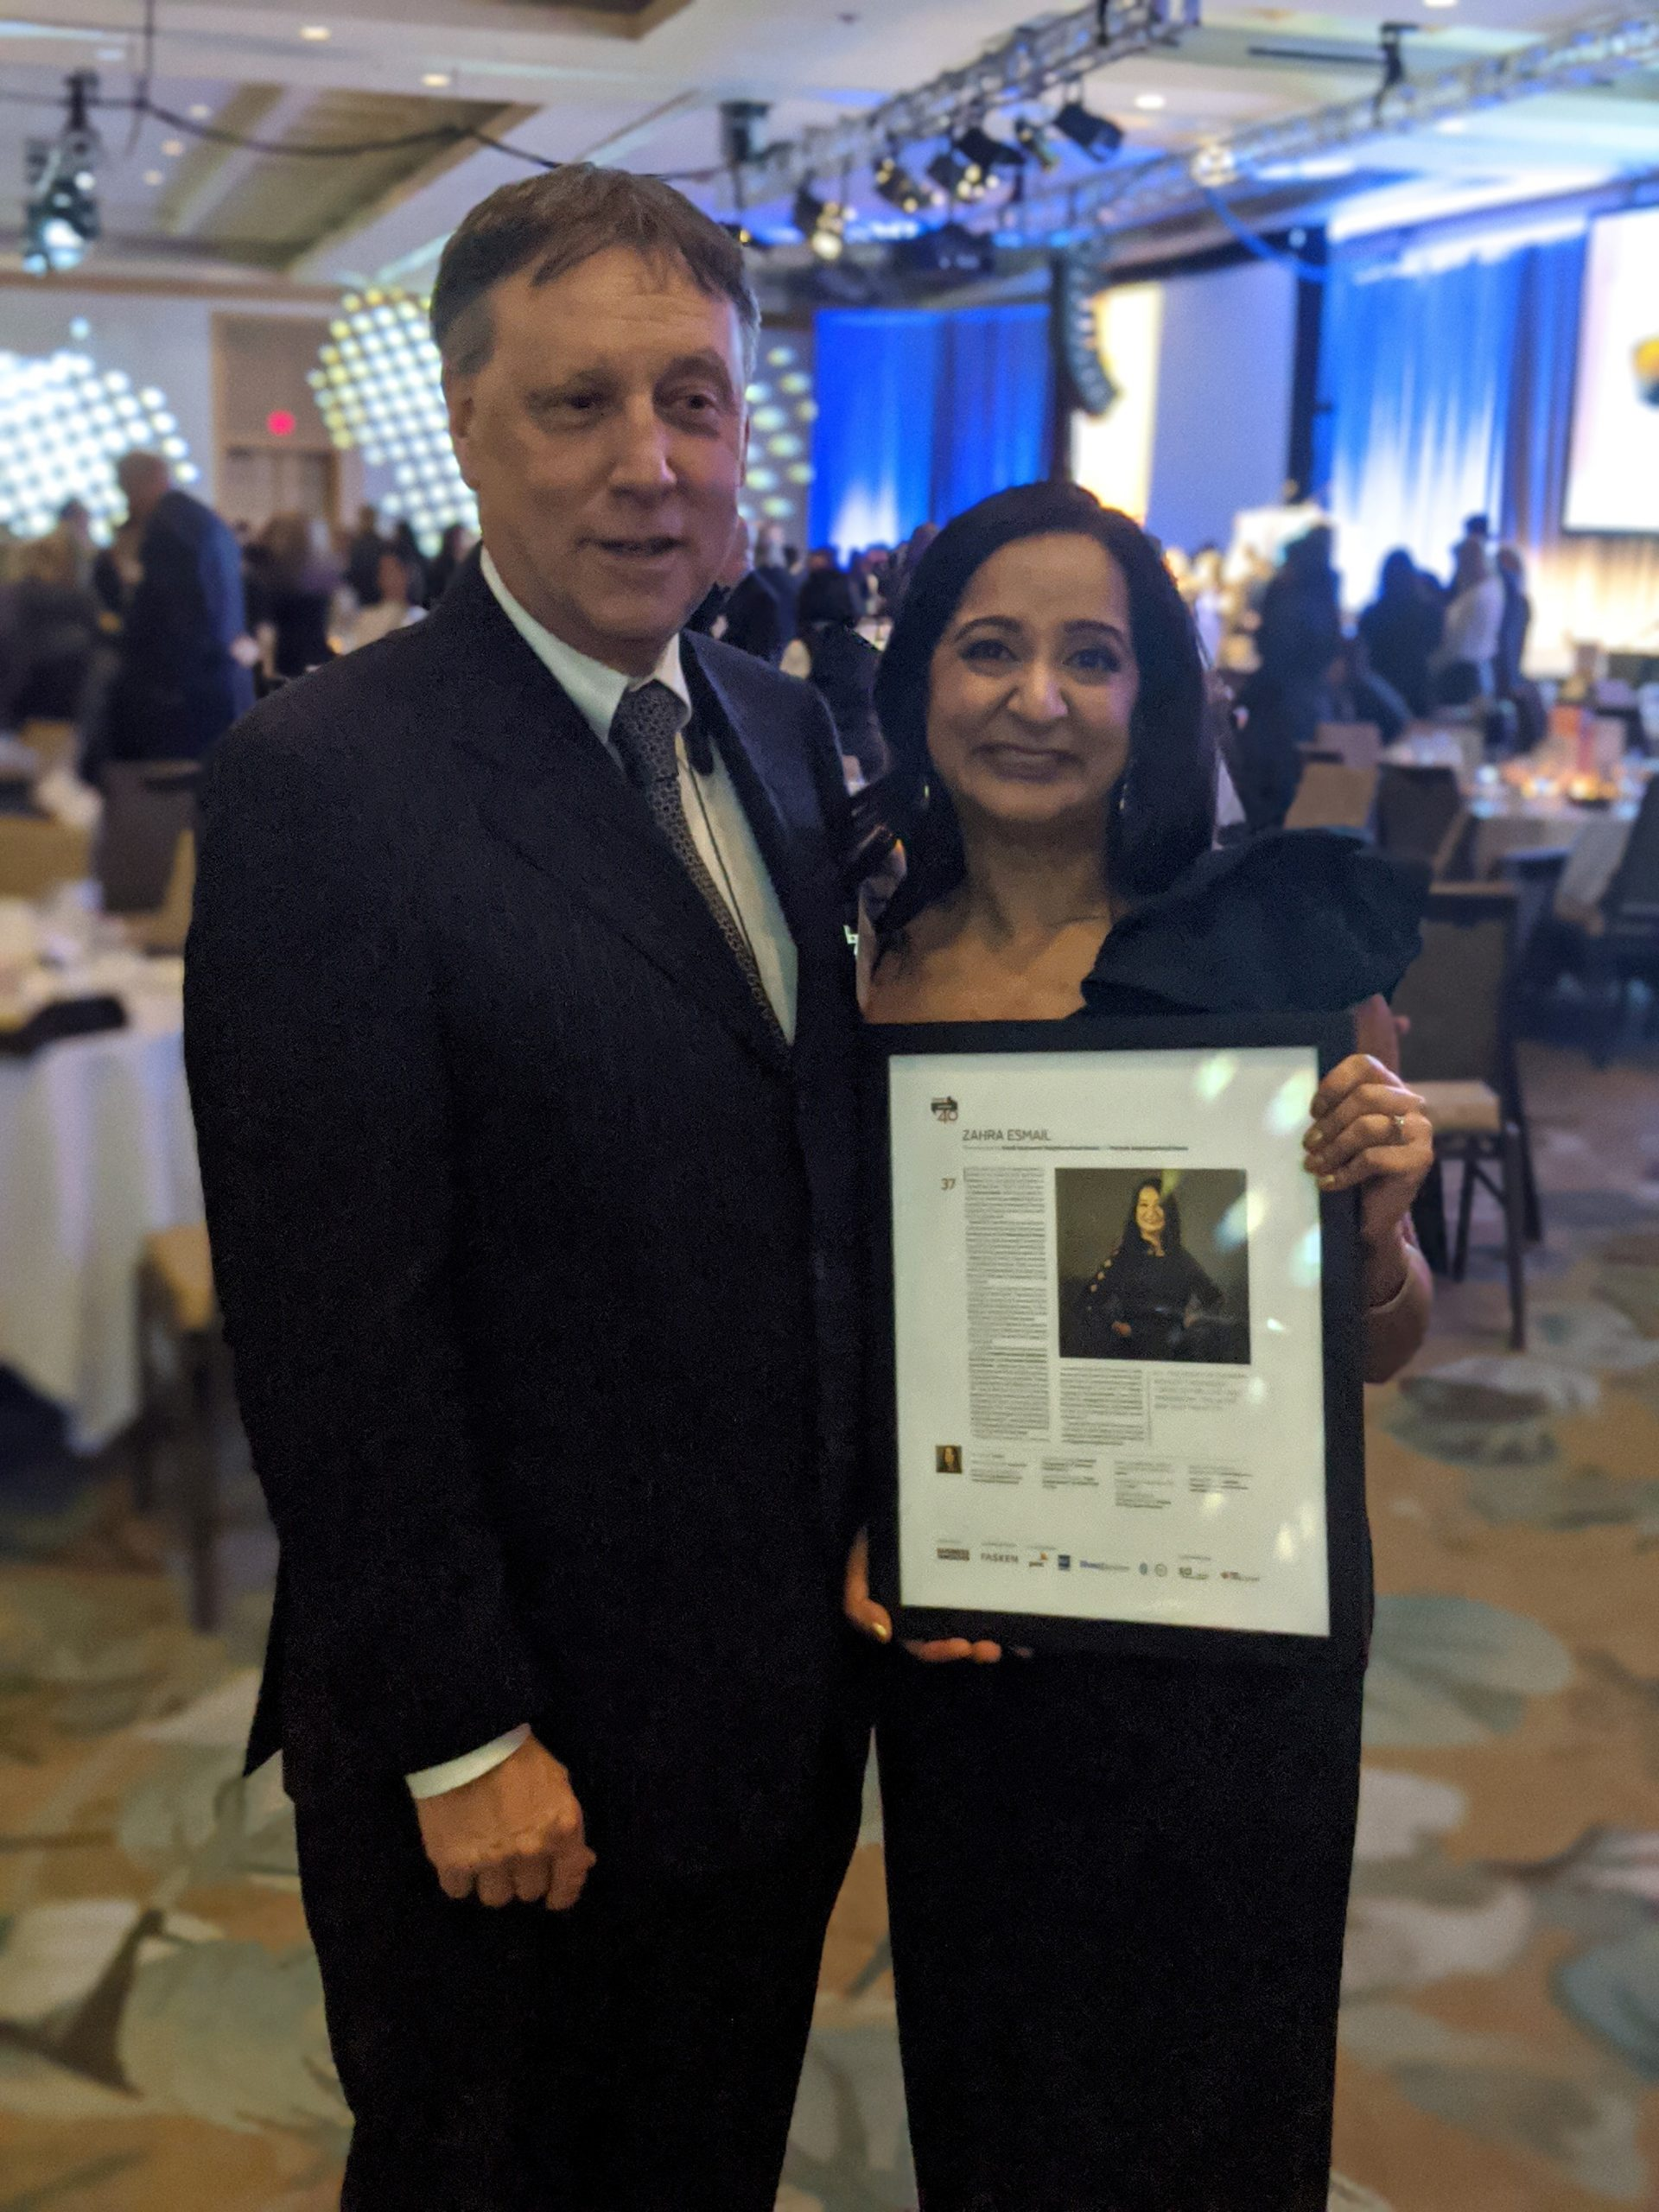 ANHBC's Zahra Esmail wins Forty Under 40 Award